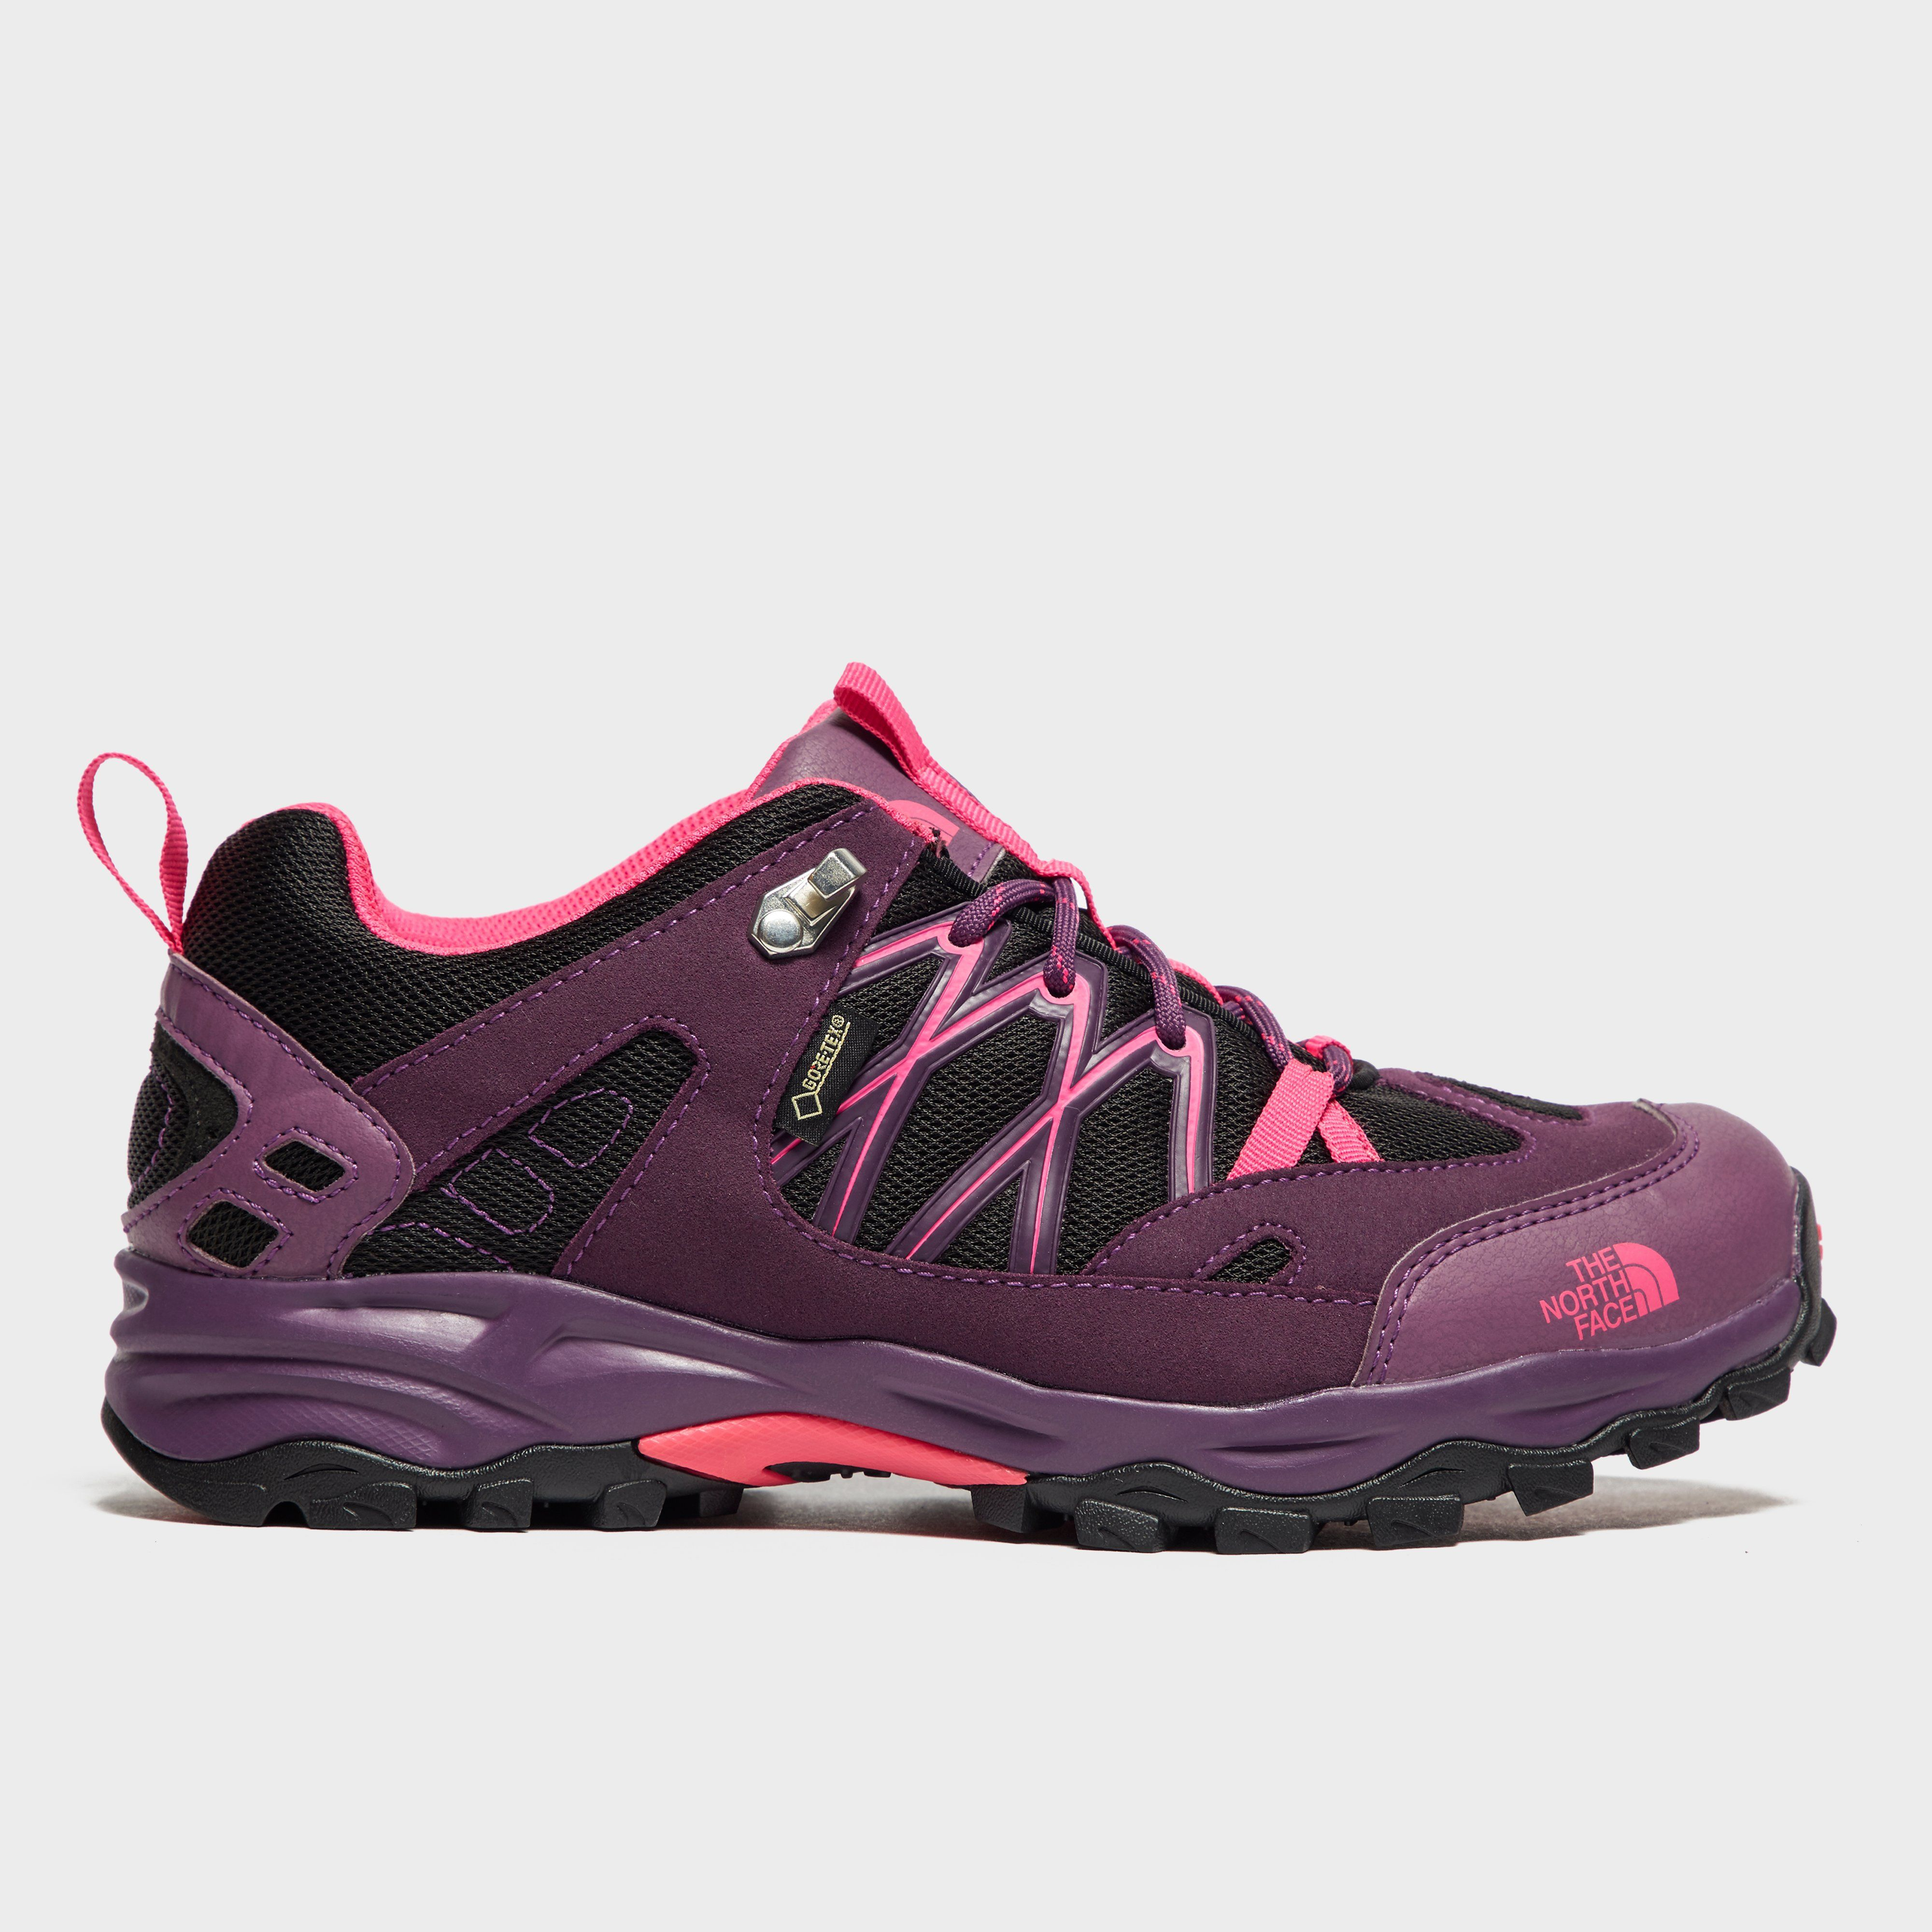 THE NORTH FACE Women's Terra GORE-TEX® Shoe